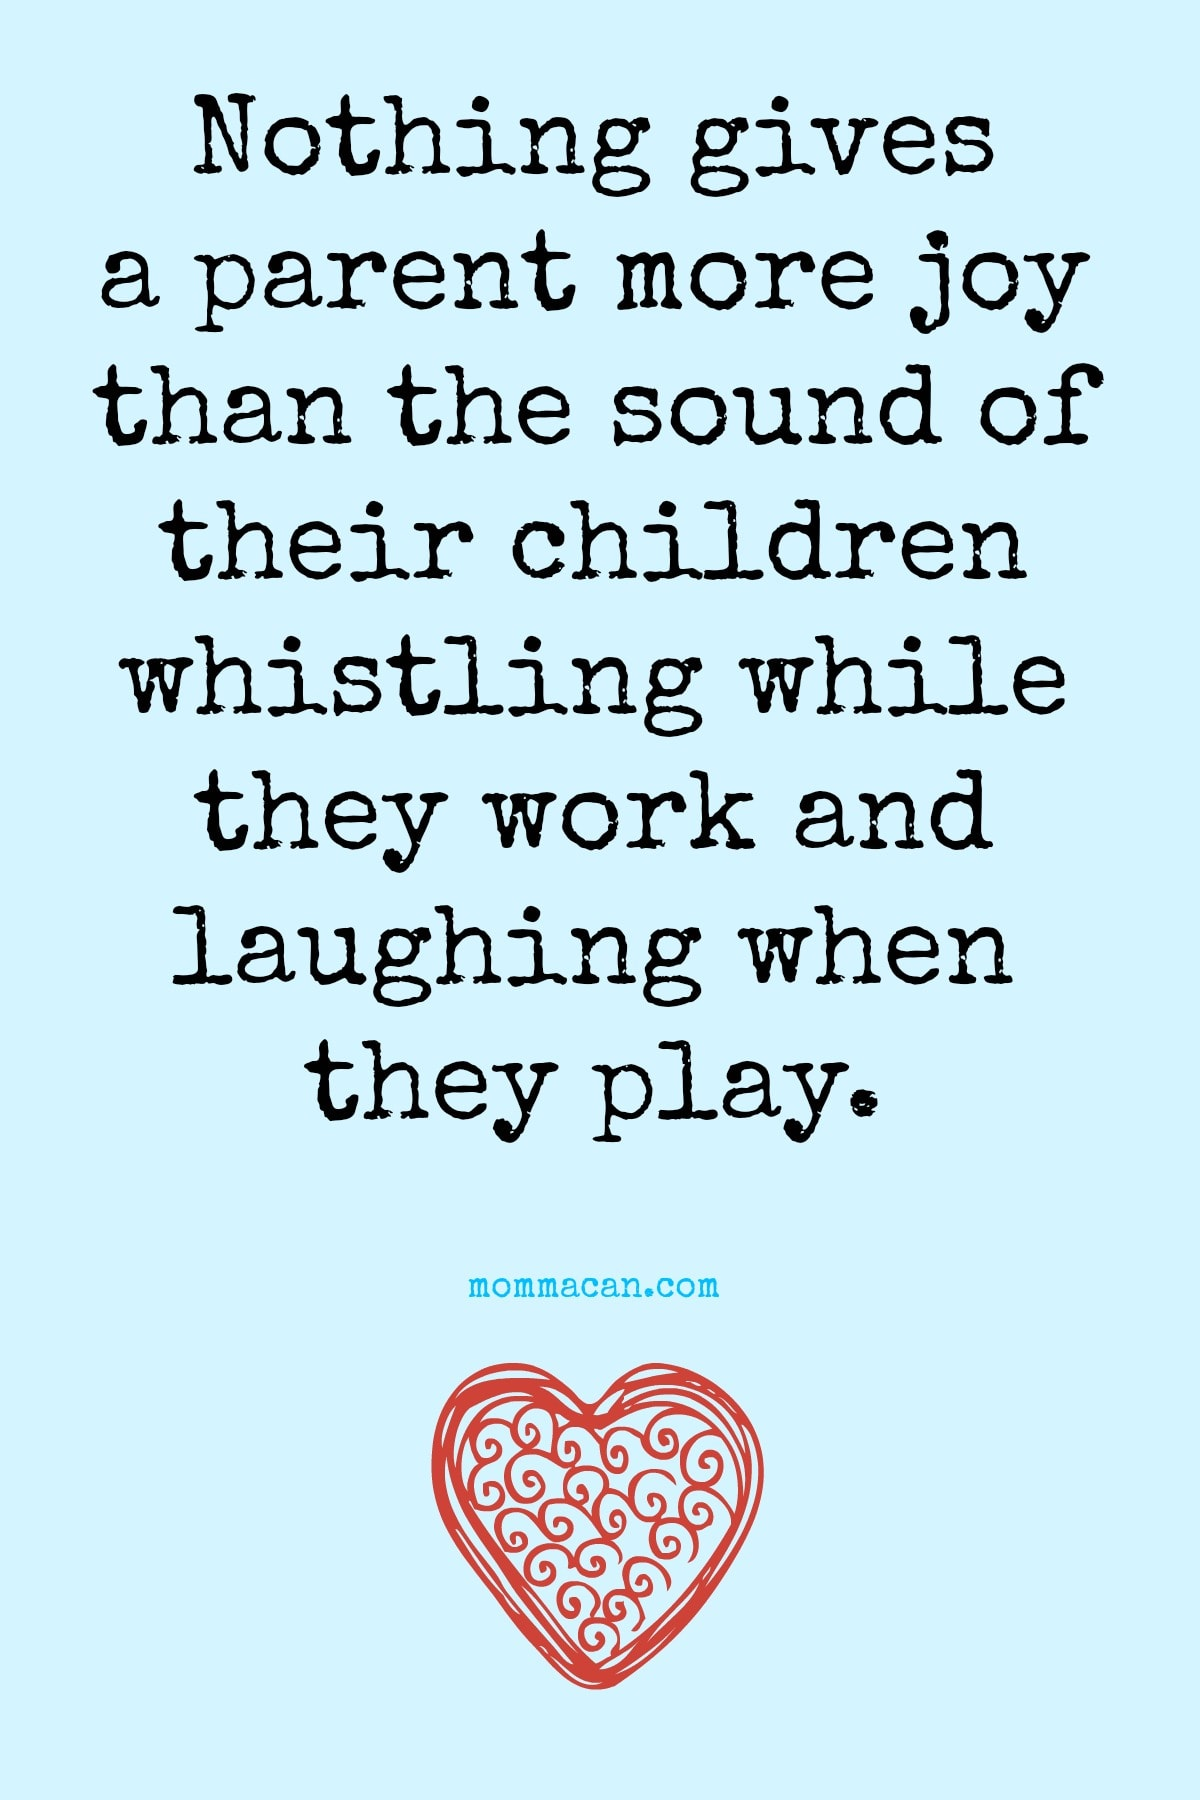 Whistles and Laughter Bring Parents Joy